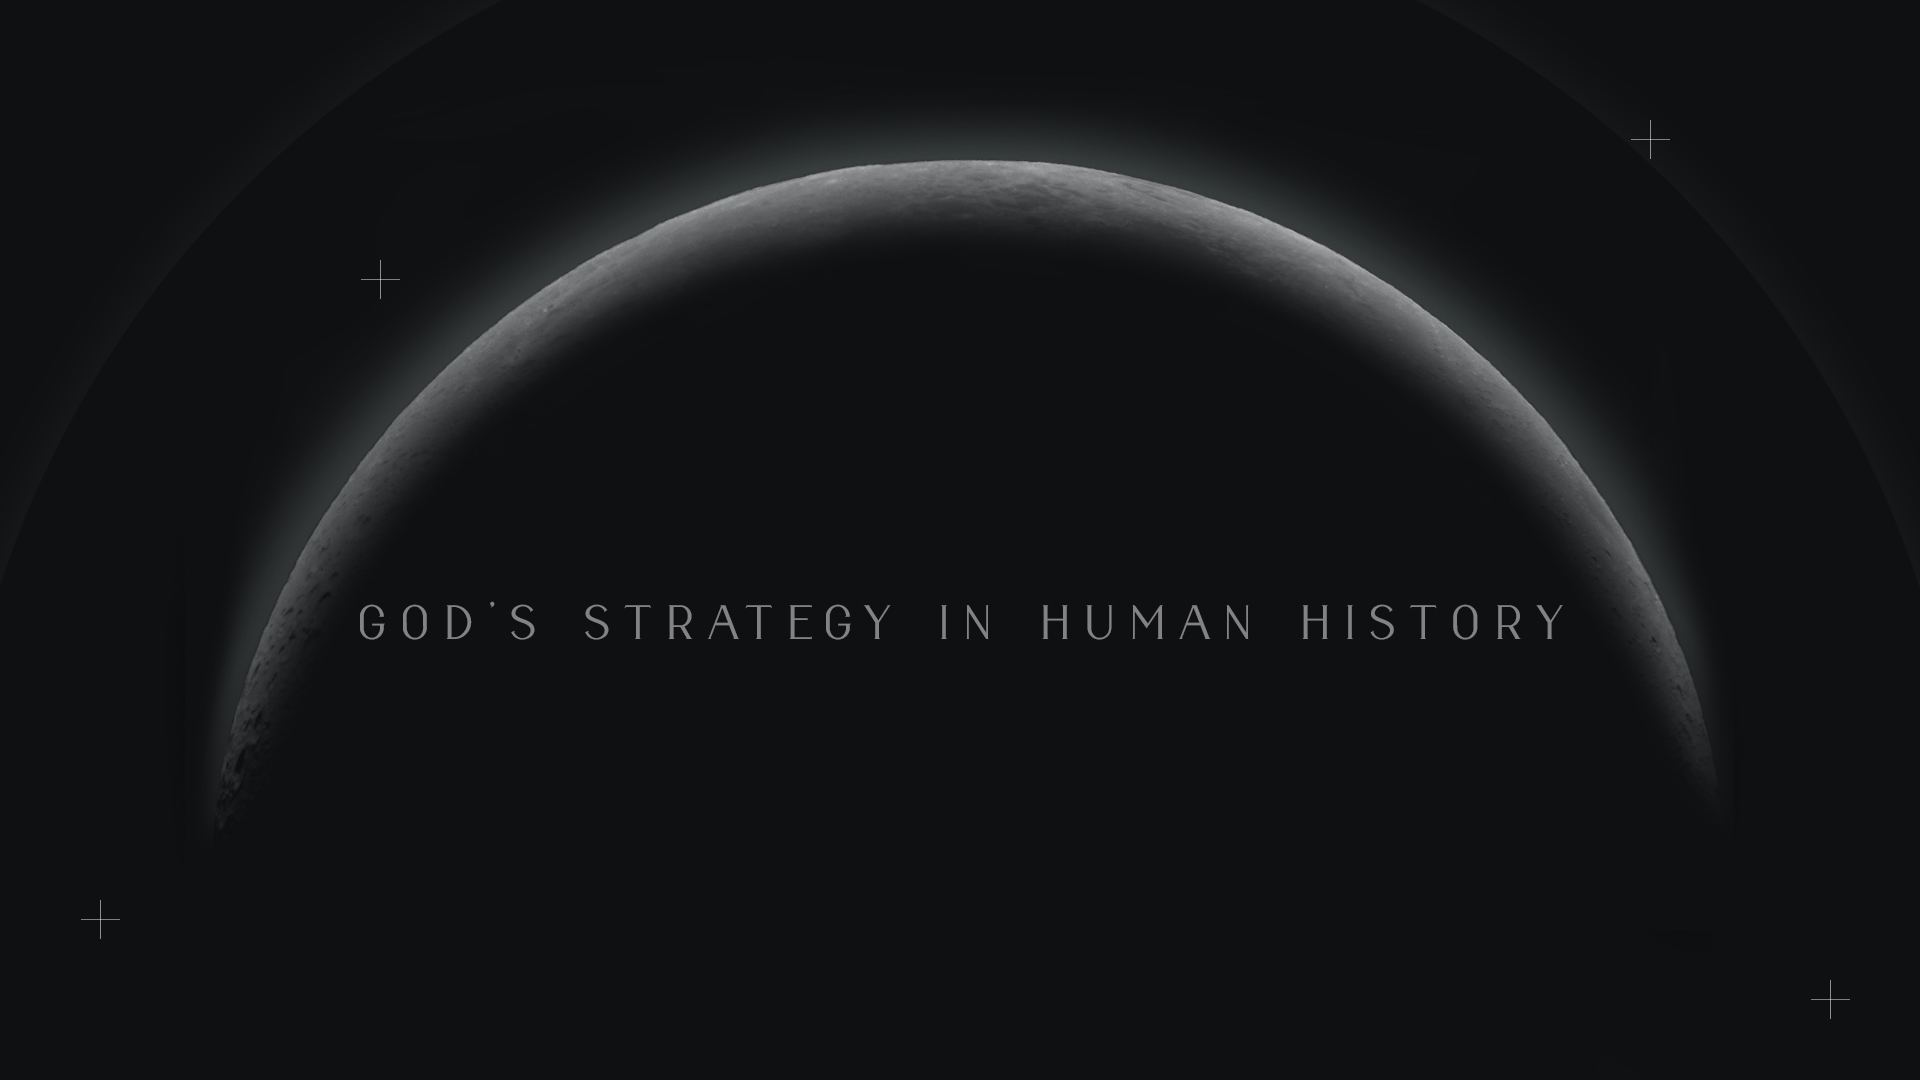 God's Strategy in Human History